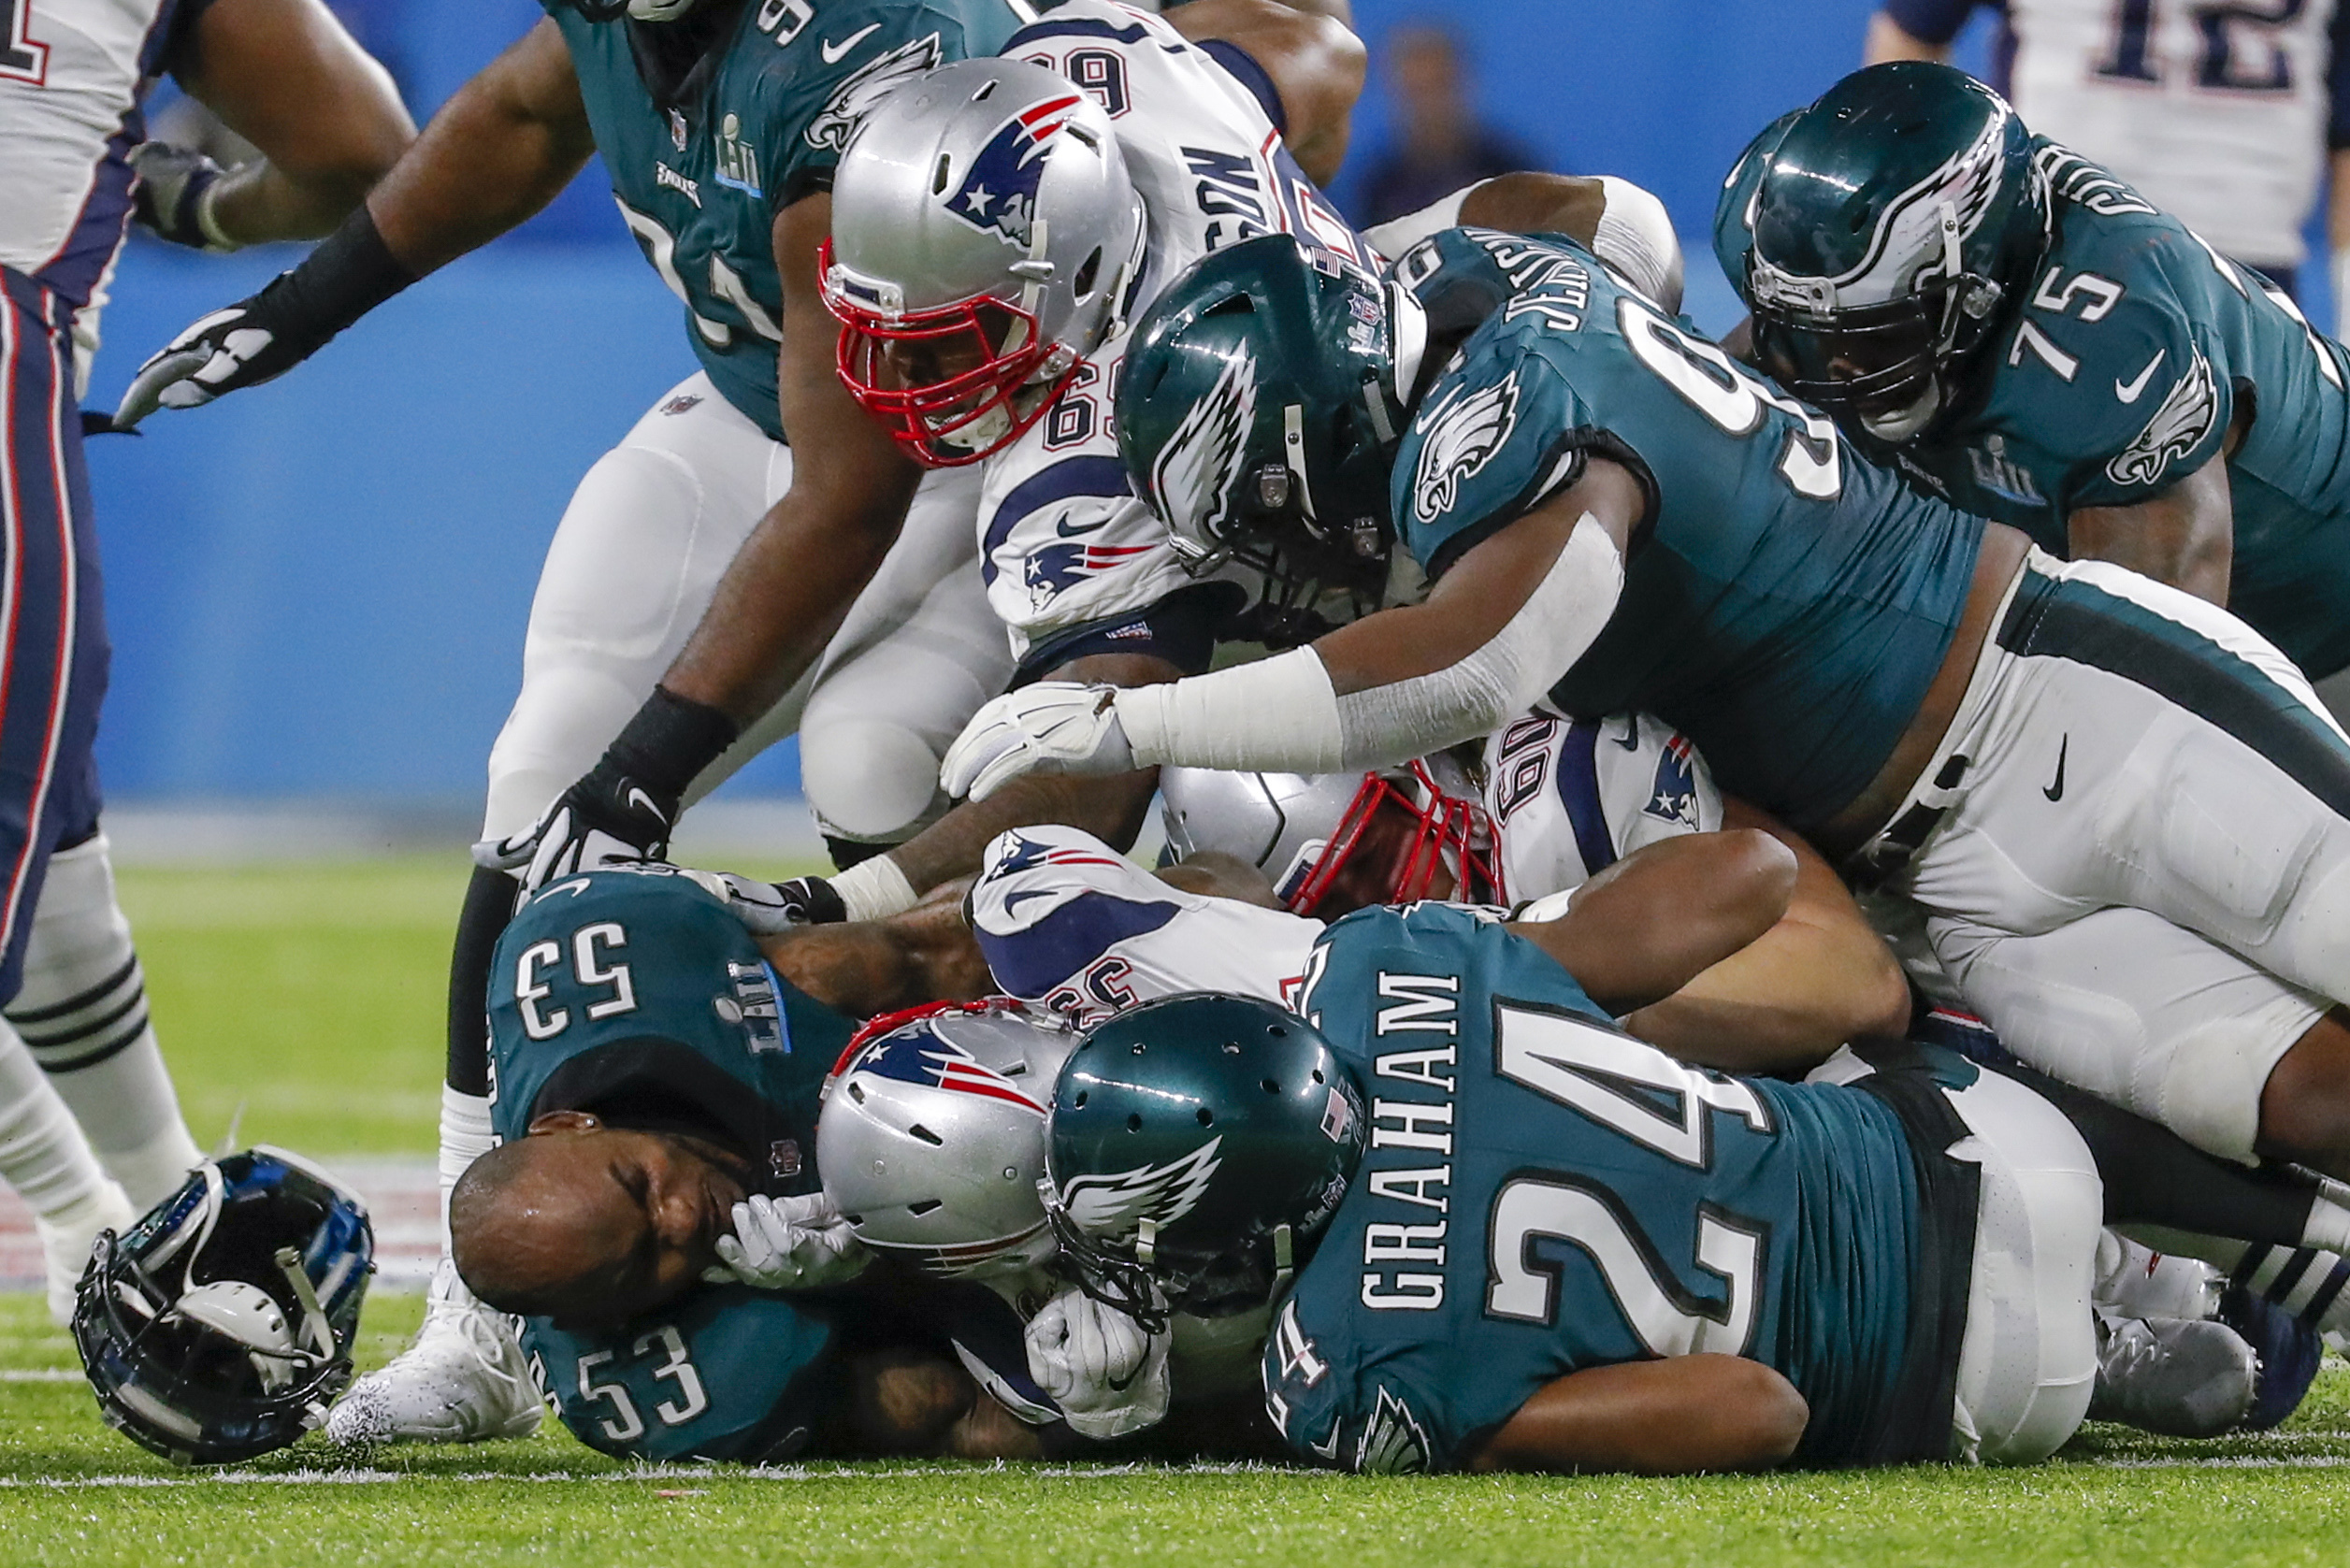 <div class='meta'><div class='origin-logo' data-origin='AP'></div><span class='caption-text' data-credit='AP Photo/Charlie Neibergall'>Philadelphia Eagles outside linebacker Nigel Bradham (53), loses his helmet as players pile up on a play during the first half of the NFL Super Bowl 52 football game.</span></div>